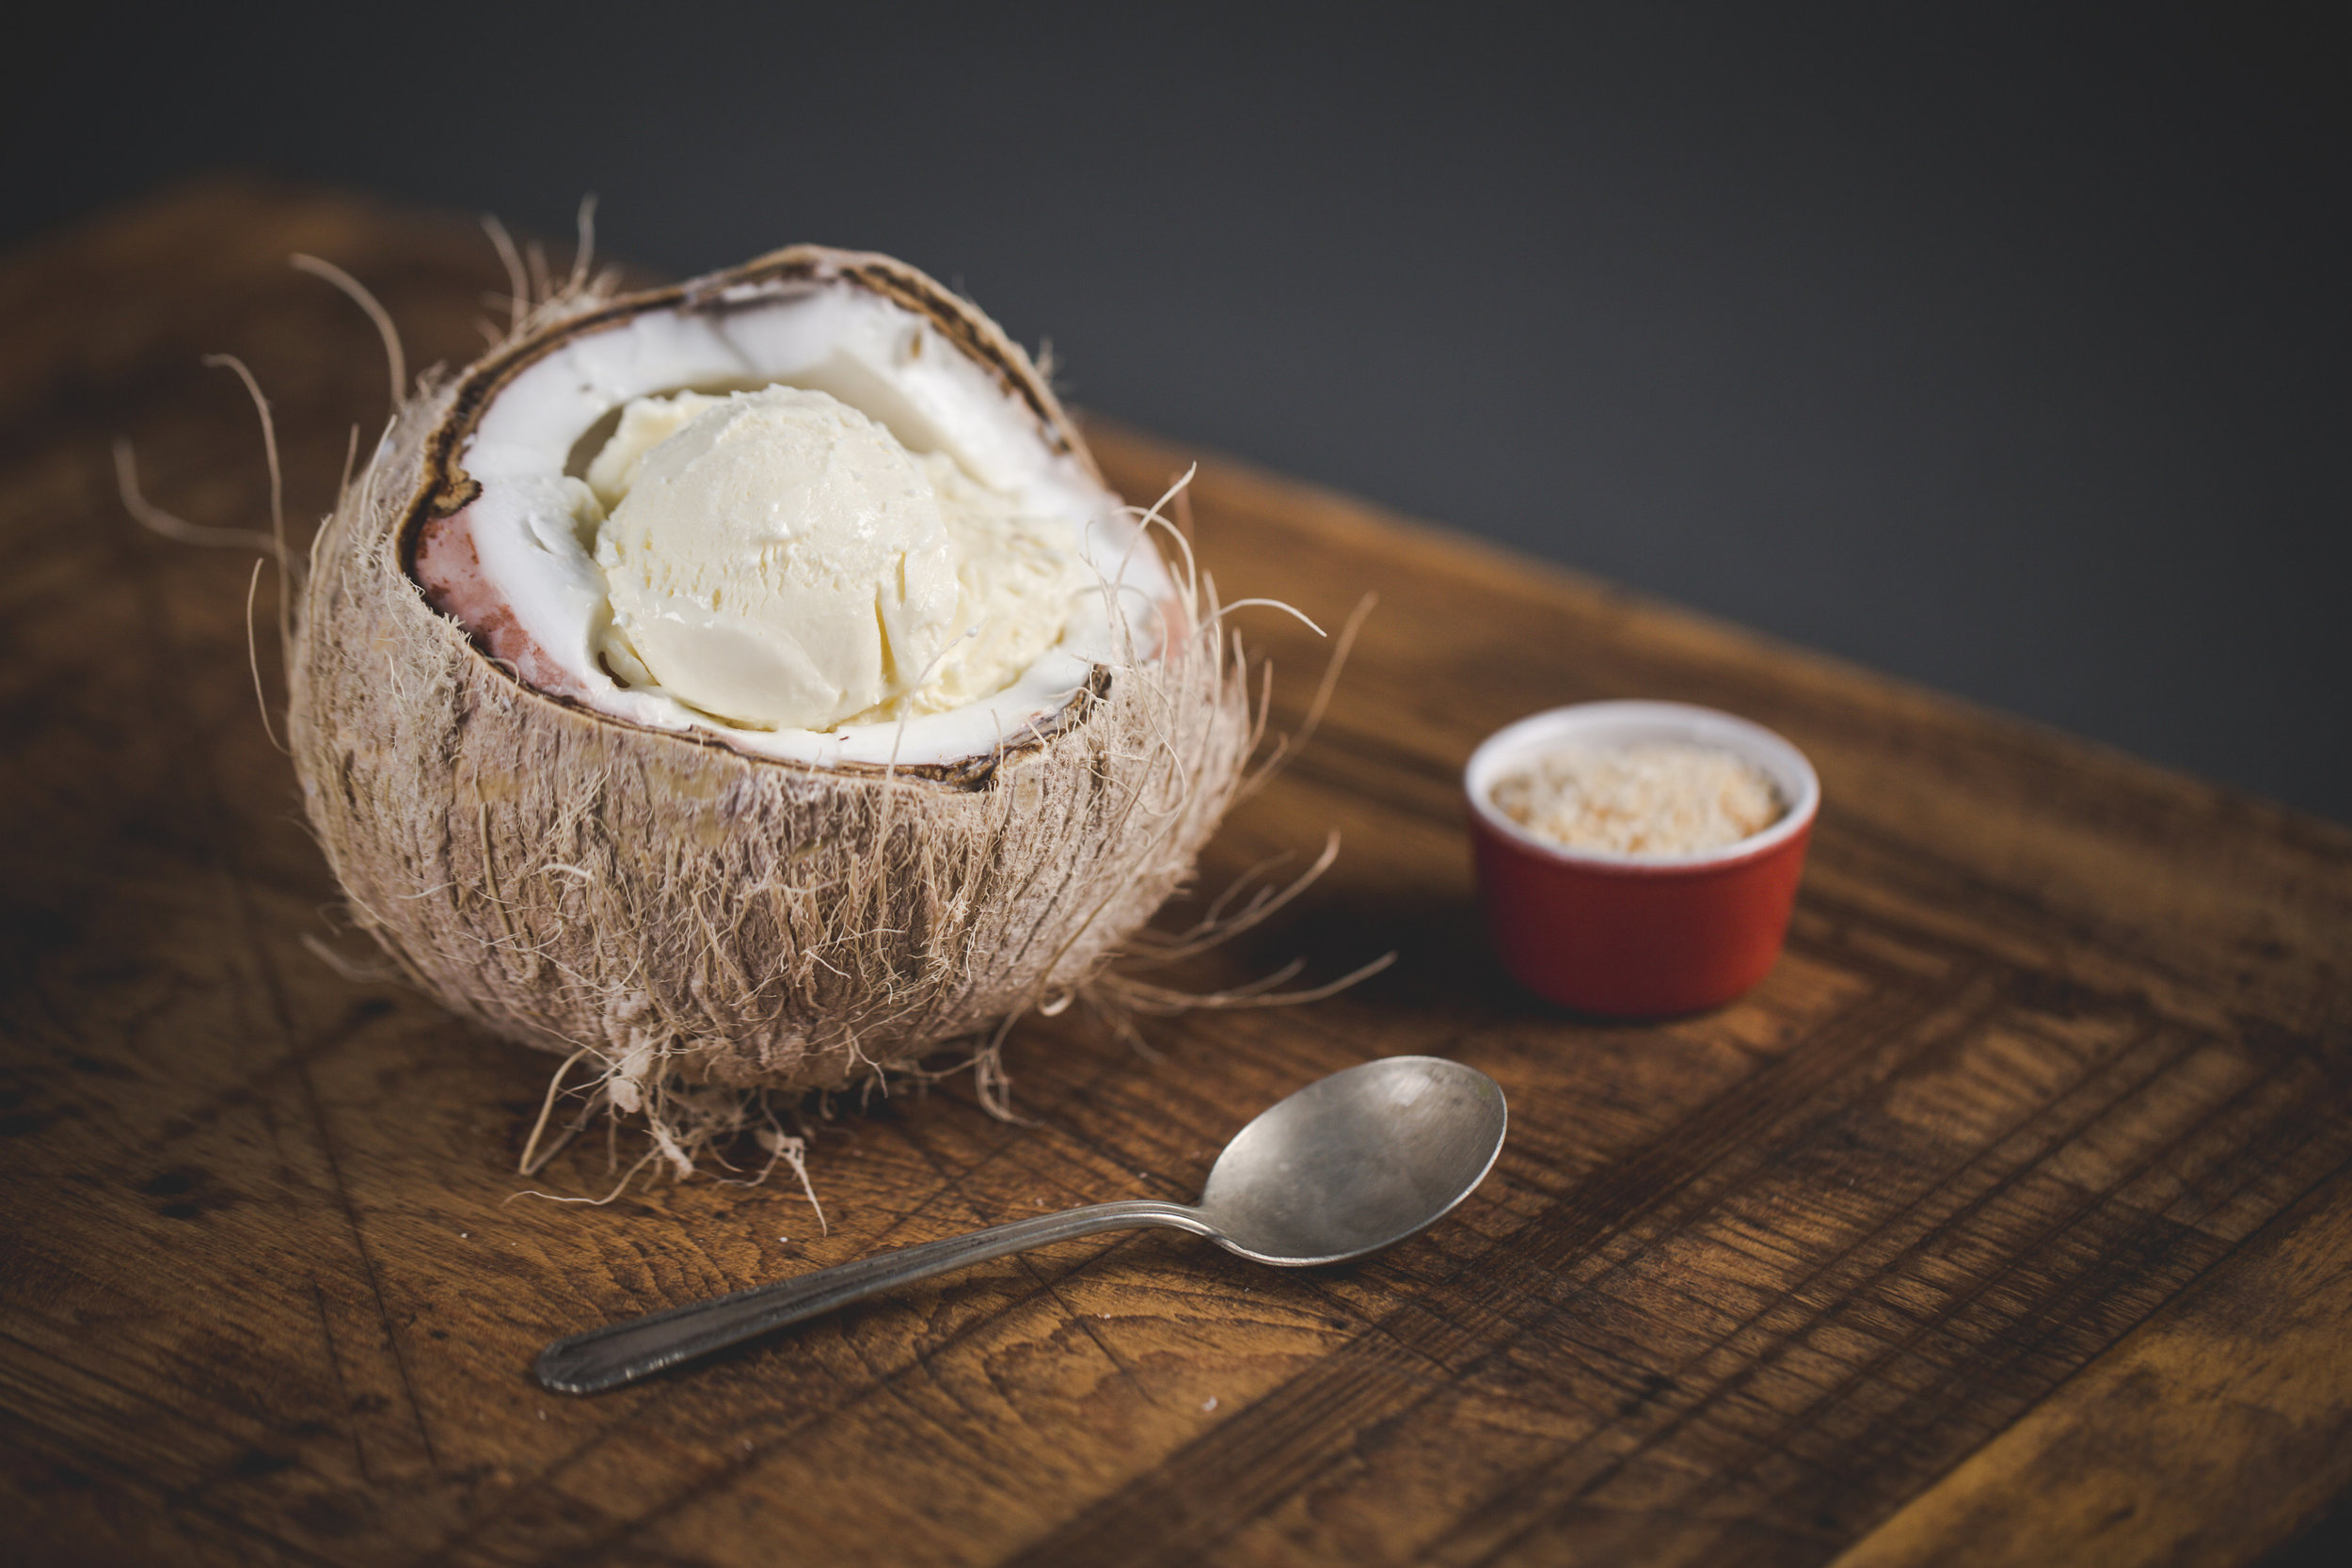 Not getting away for spring break? Escape to a tropical island in your own home with a pint of Leona's Toasted Coconut Ice Cream. Photo by Matt Dayak